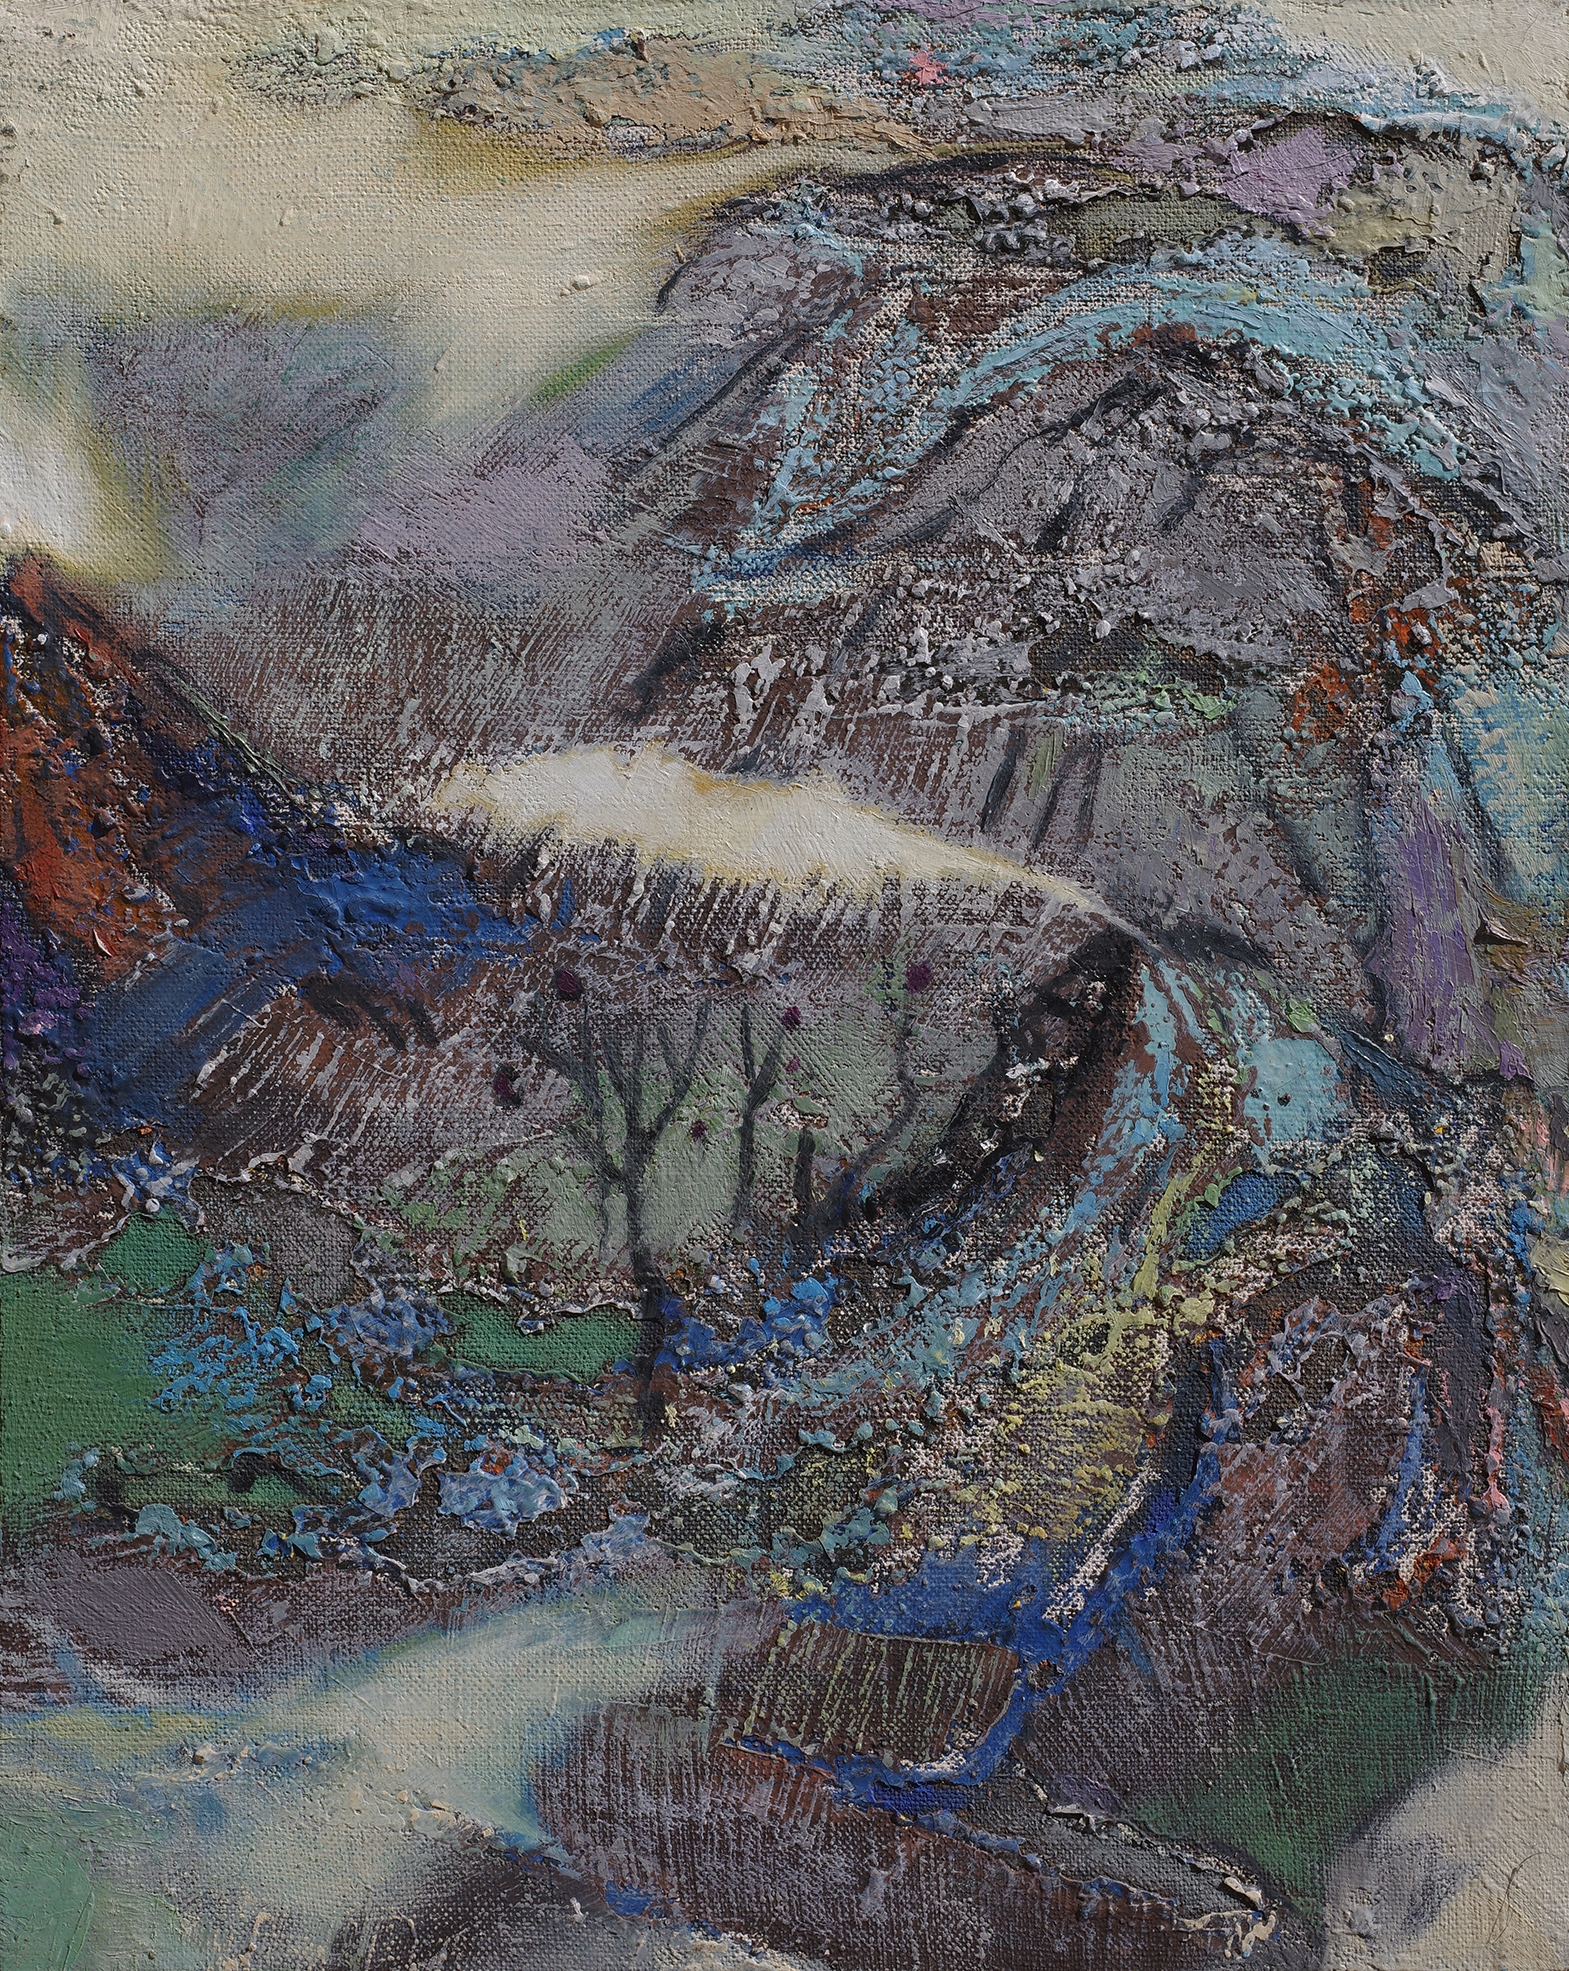 Chen Li, Spring Mountain, 2012, oil on canvas, 50cm x 40cm, private collection, United States